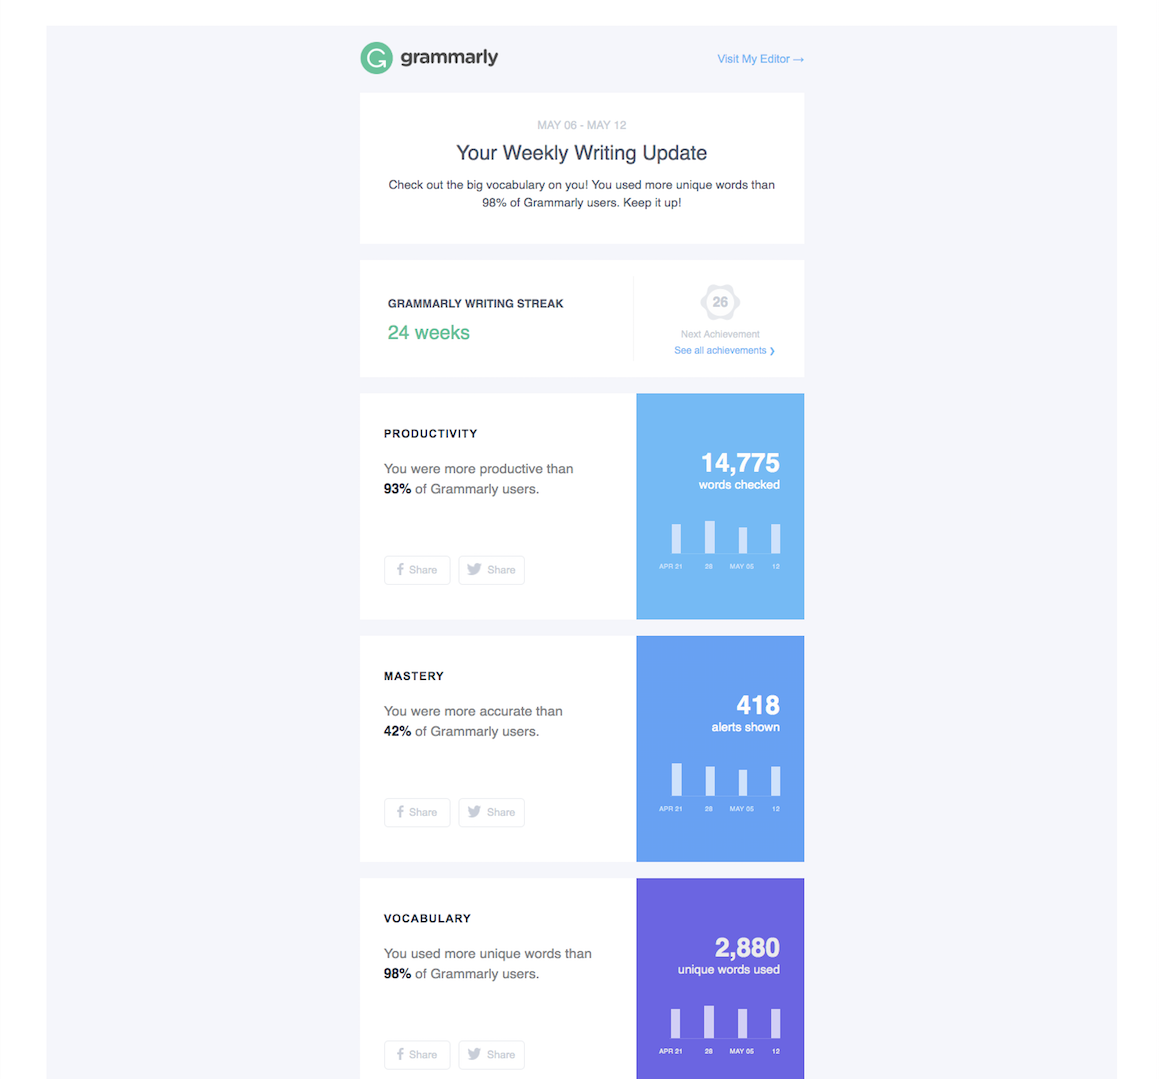 grammarly weekly re-engagement email progress report retention strategy